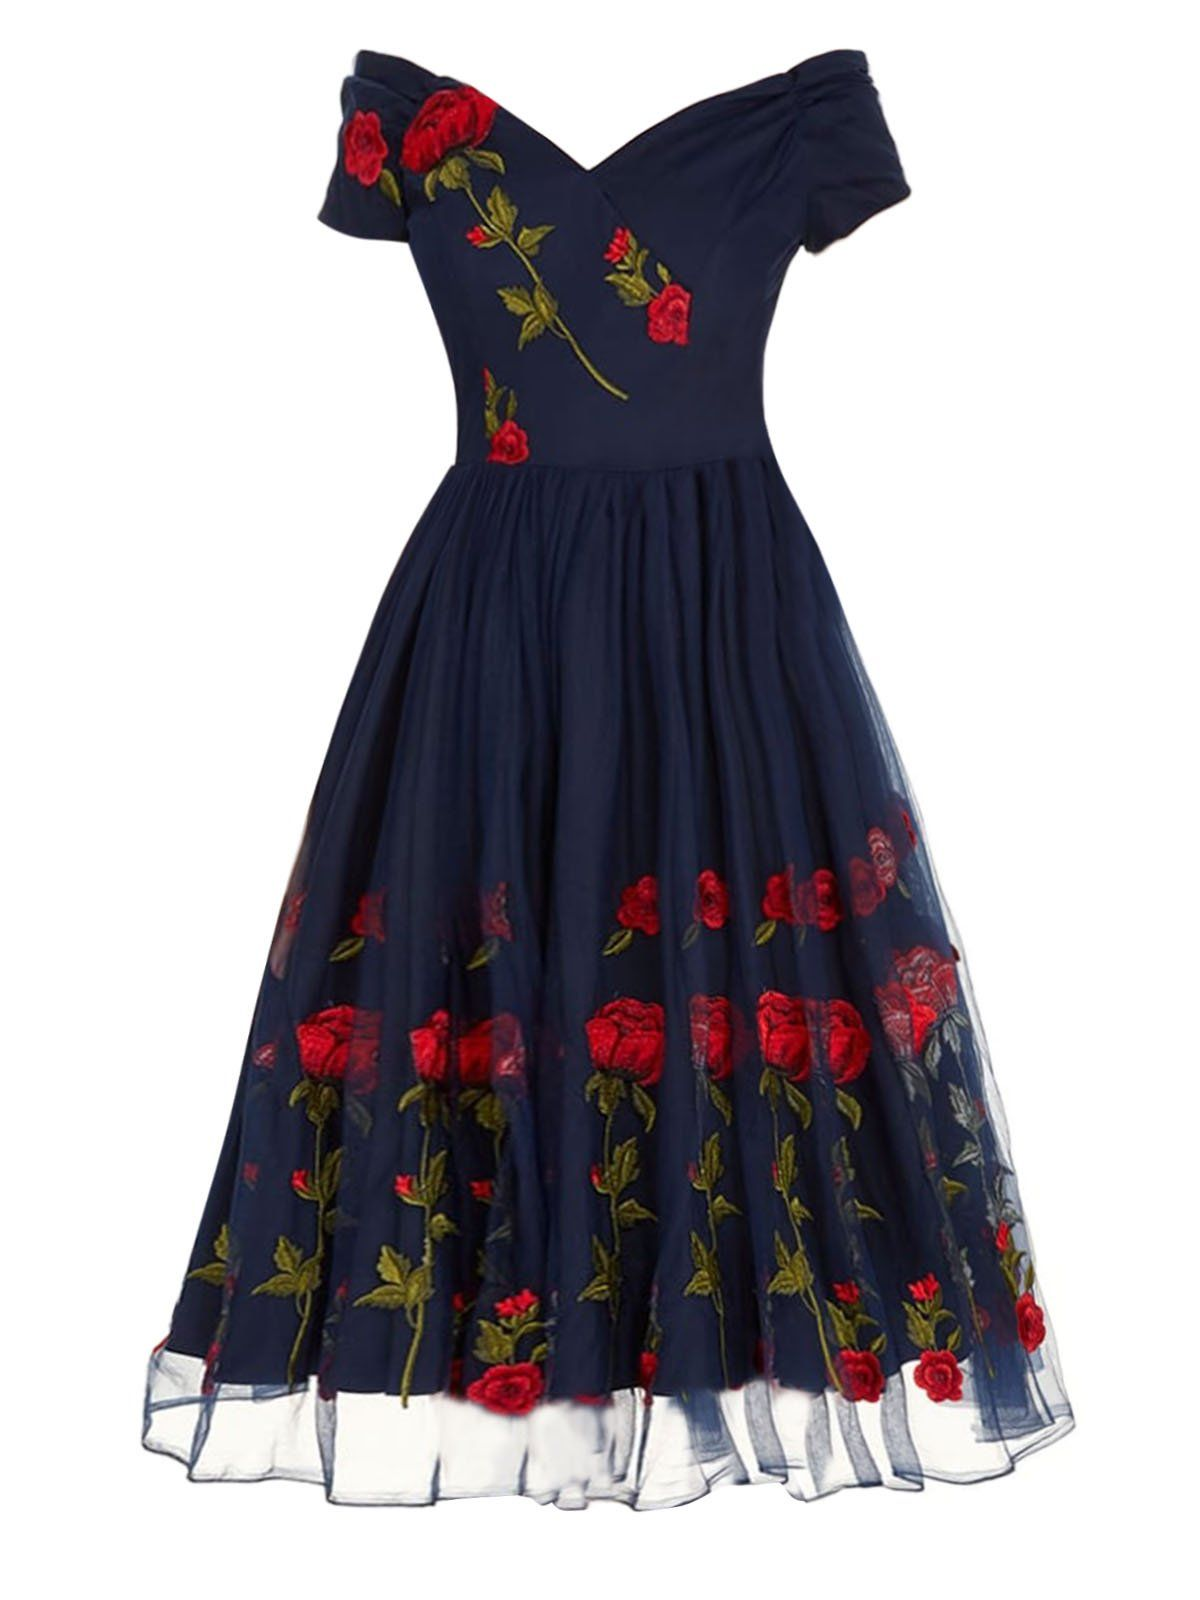 b2760b11ce749e 1950s Rose Embroidery Patchwork Dress – Retro Stage - Chic Vintage Dresses  and Accessories